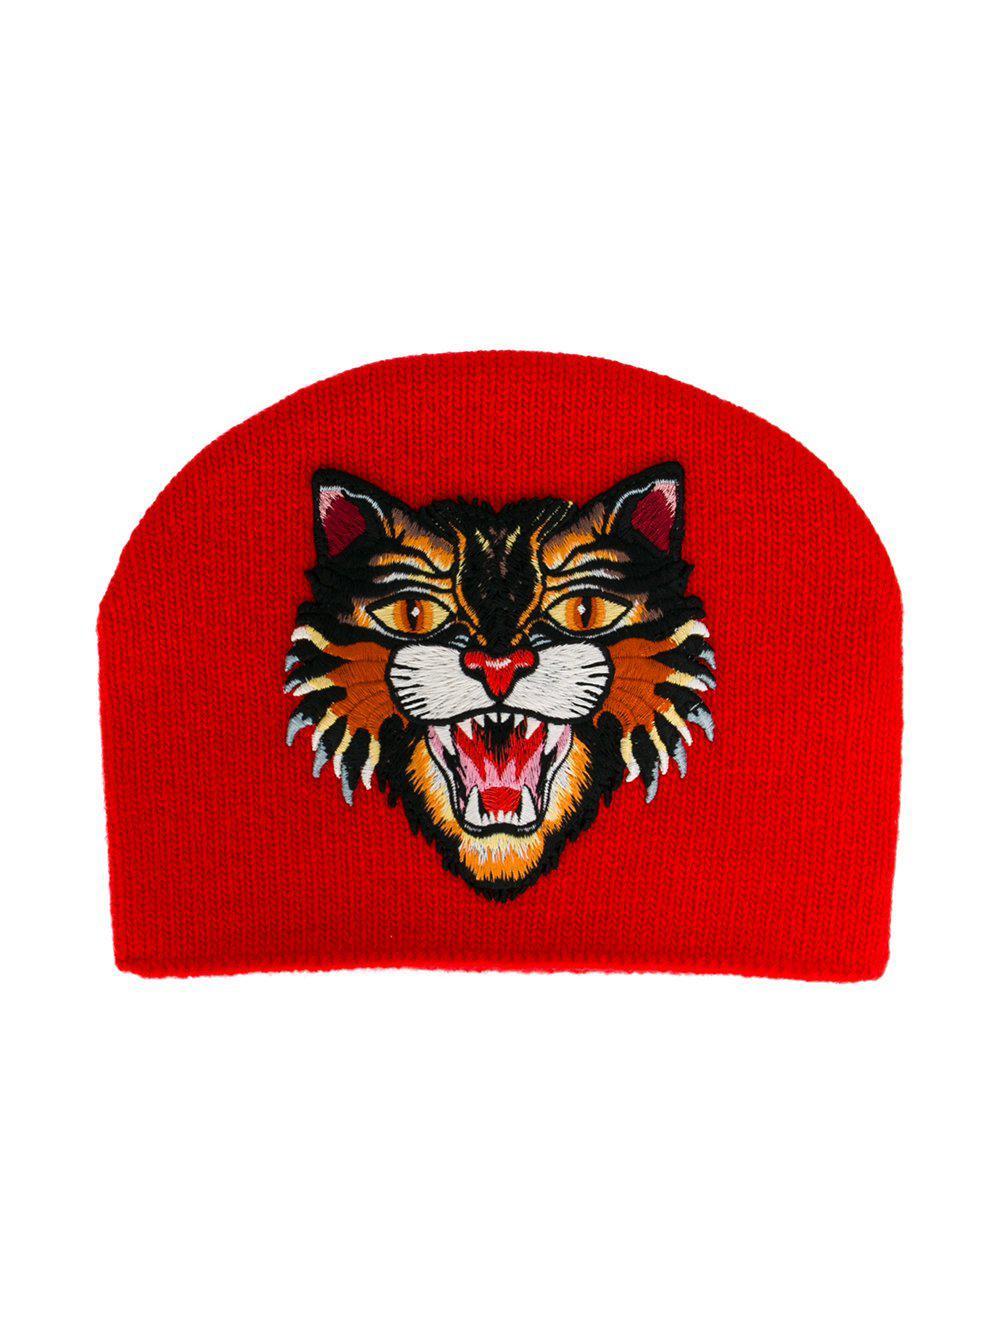 3c41013d0fd Lyst - Gucci Embroidered Angry Cat Beanie in Red